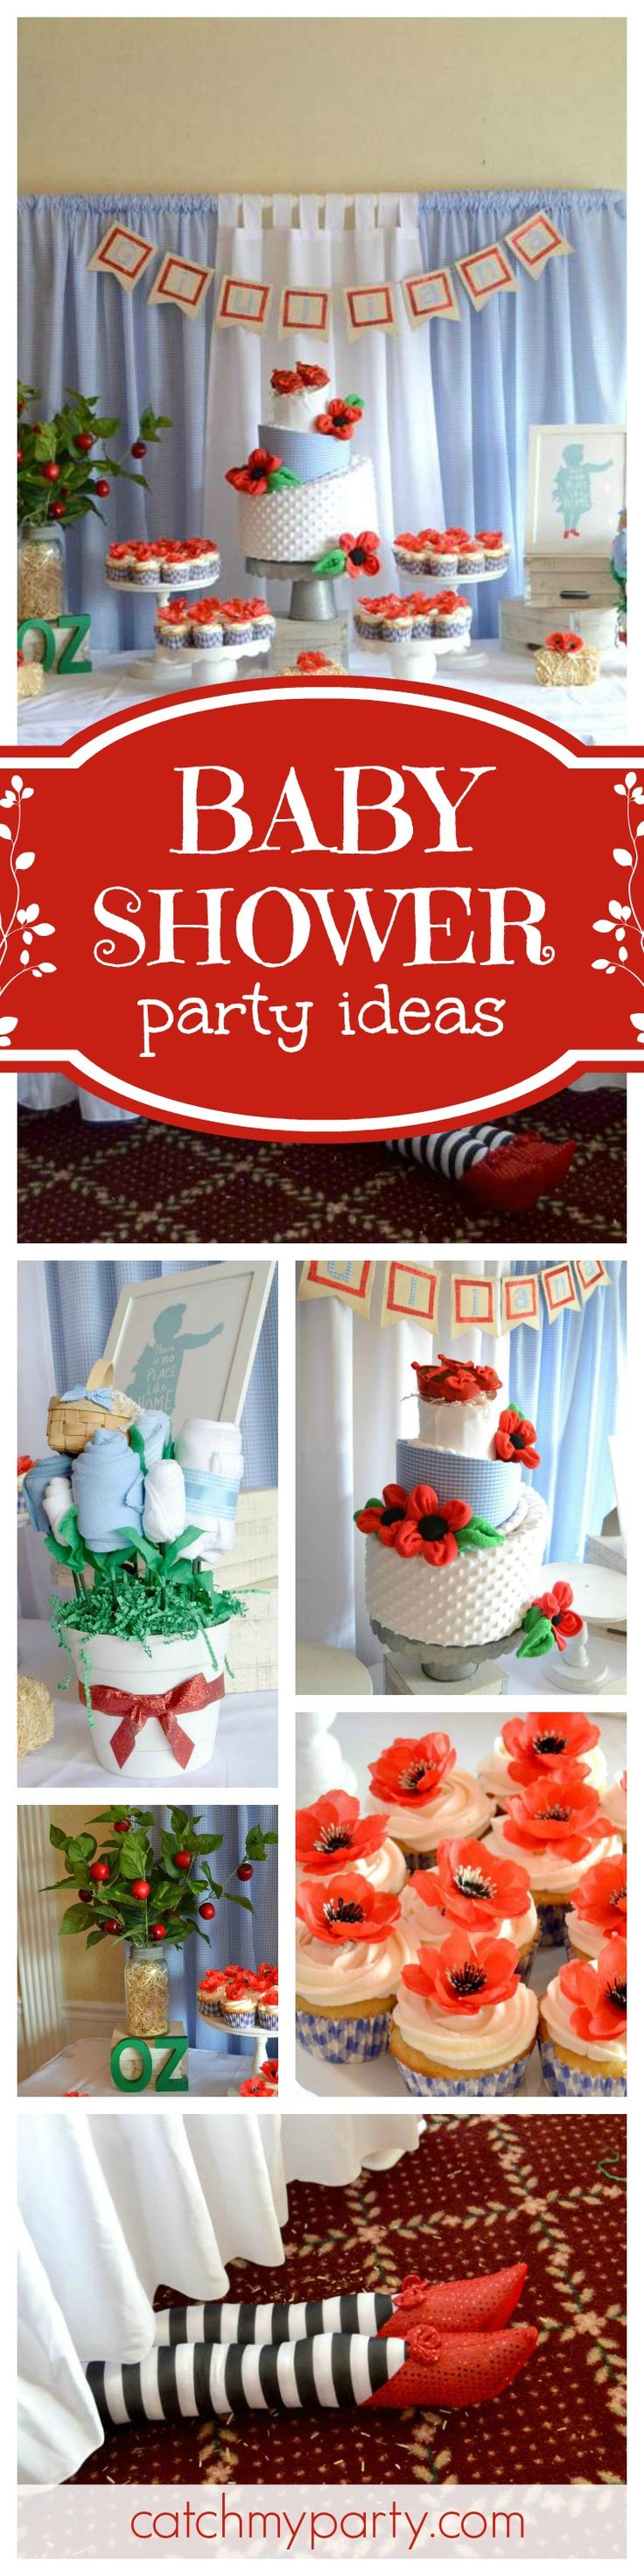 582 best Baby Shower Ideas images on Pinterest